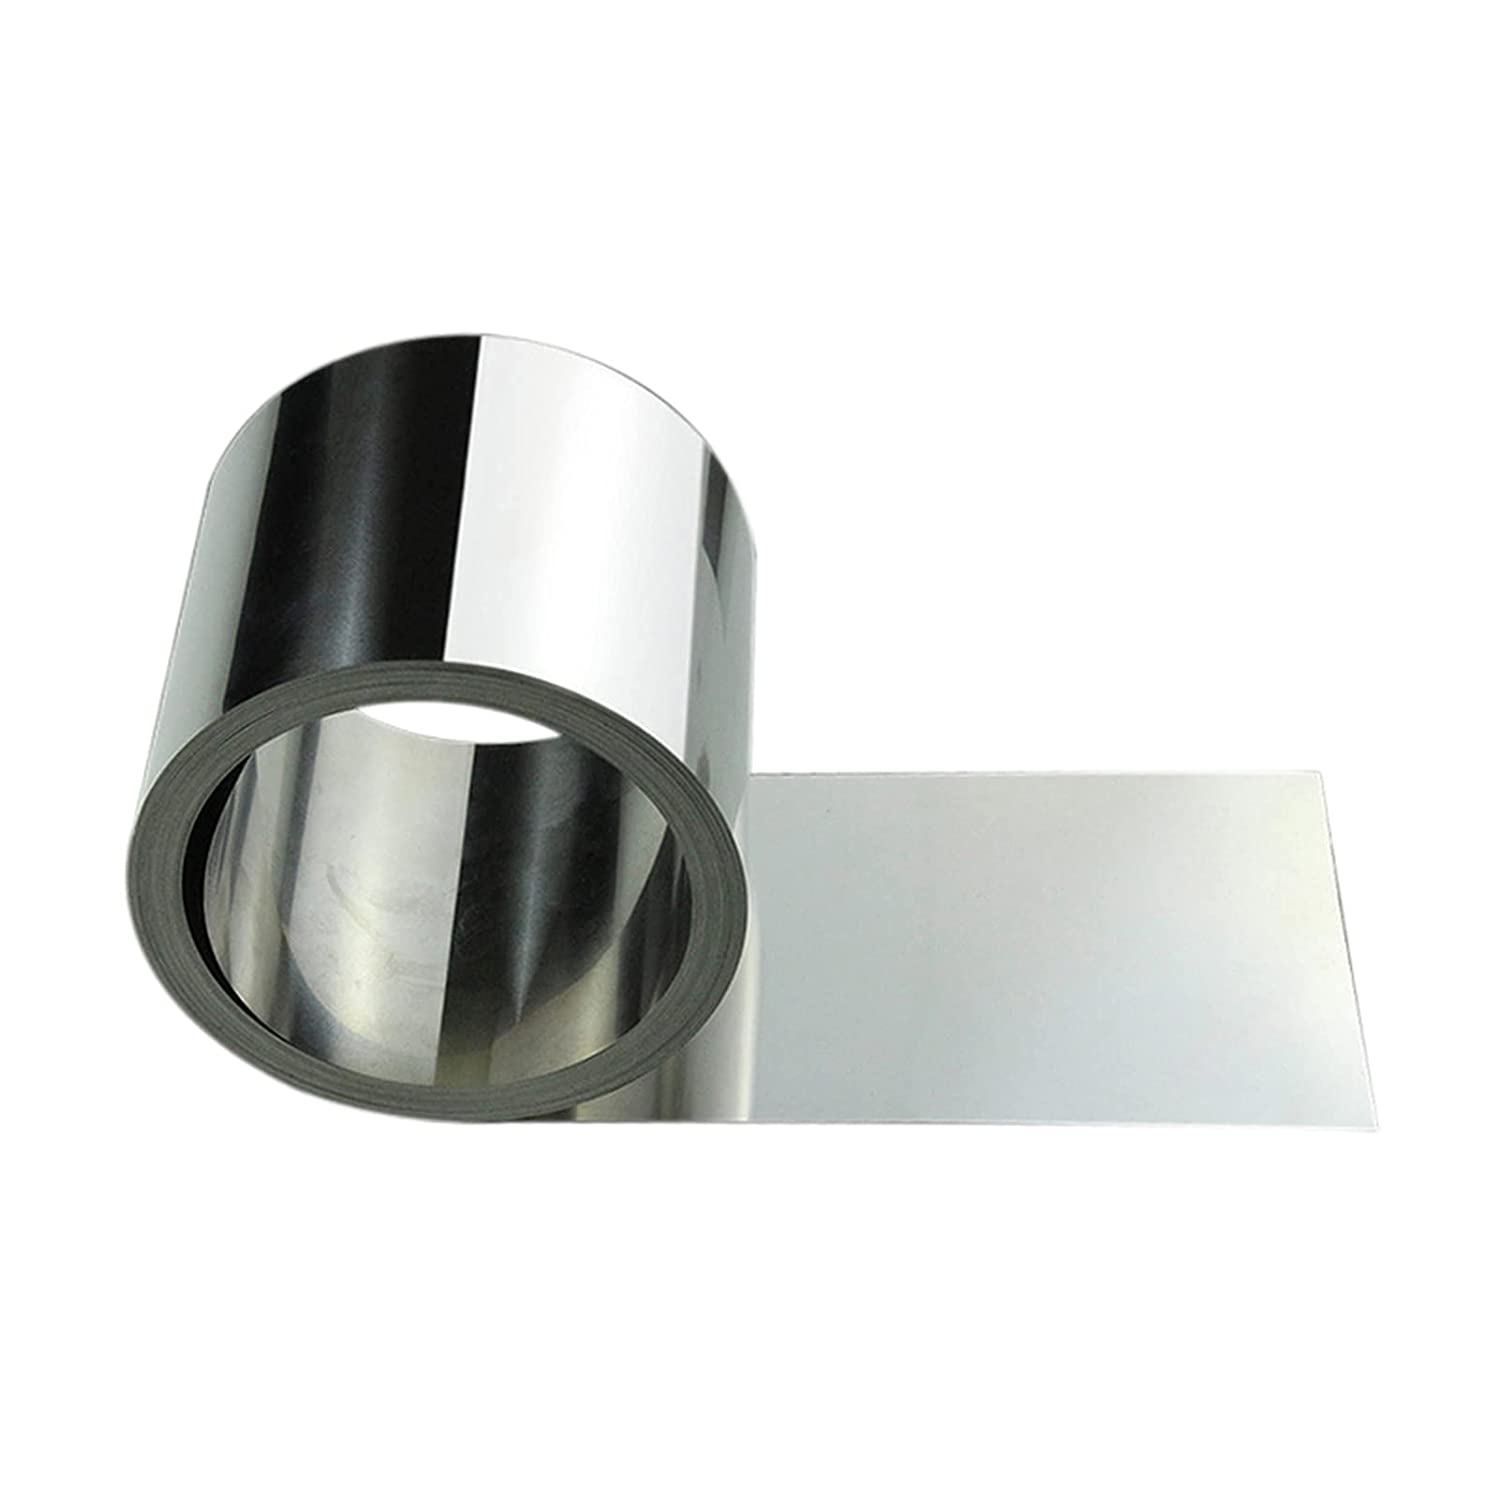 304 Stainless Steel Free shipping anywhere in the OFFicial store nation Strip Industrial raw Metal Processi Material